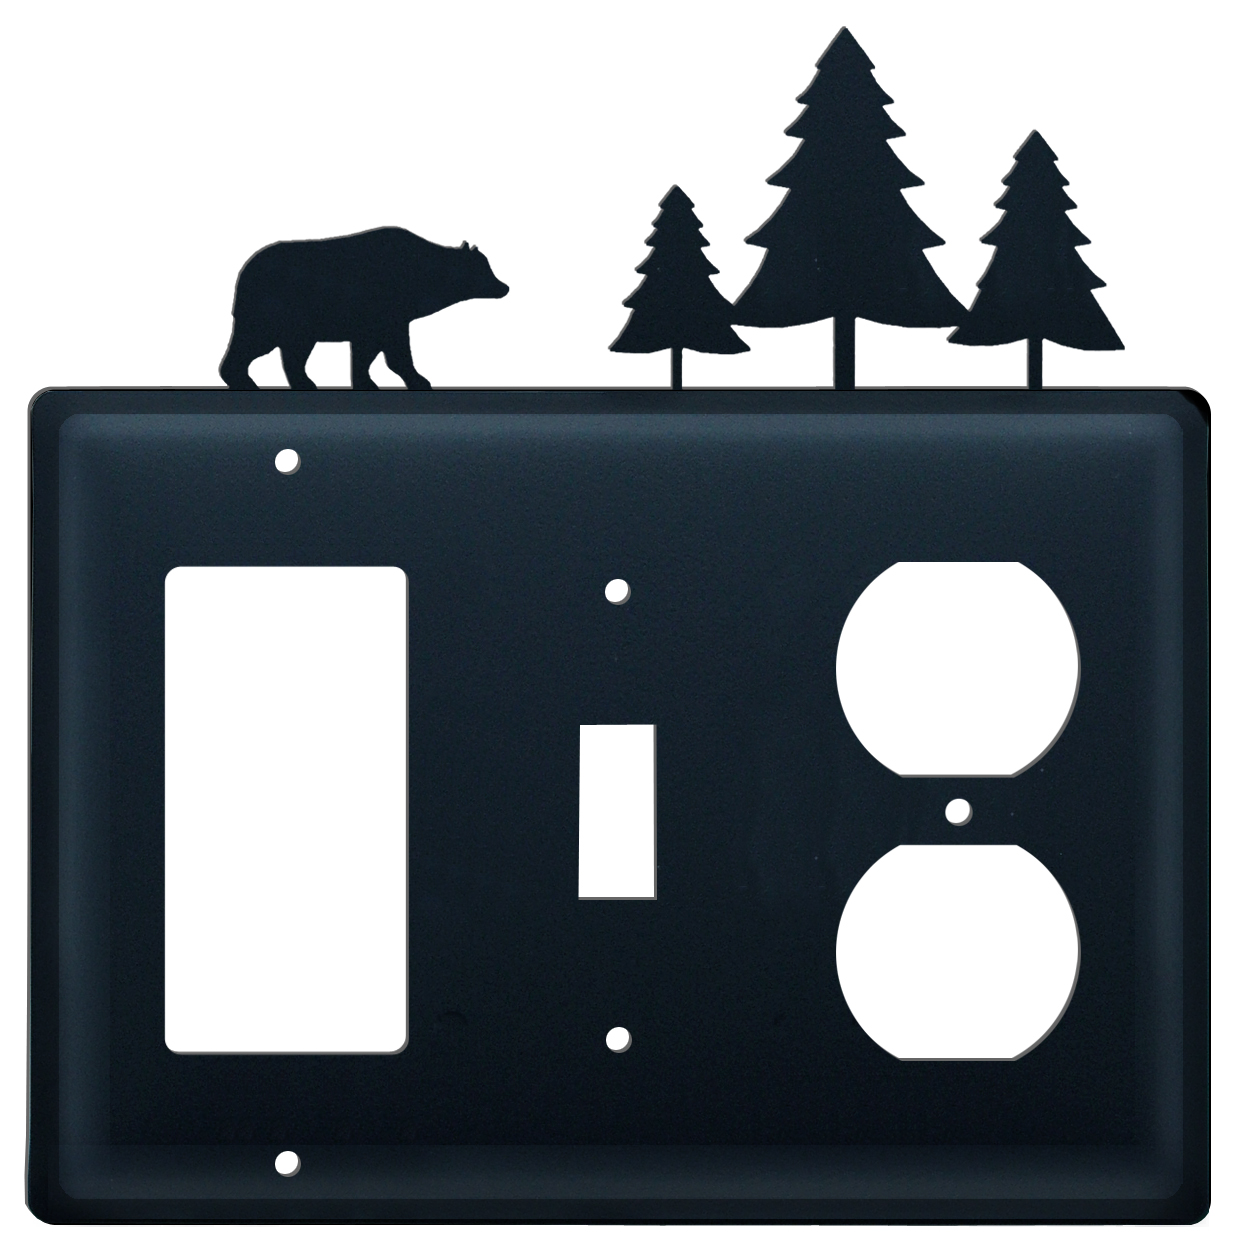 Bear & Pine Trees - Single GFI, Switch and Outlet Cover